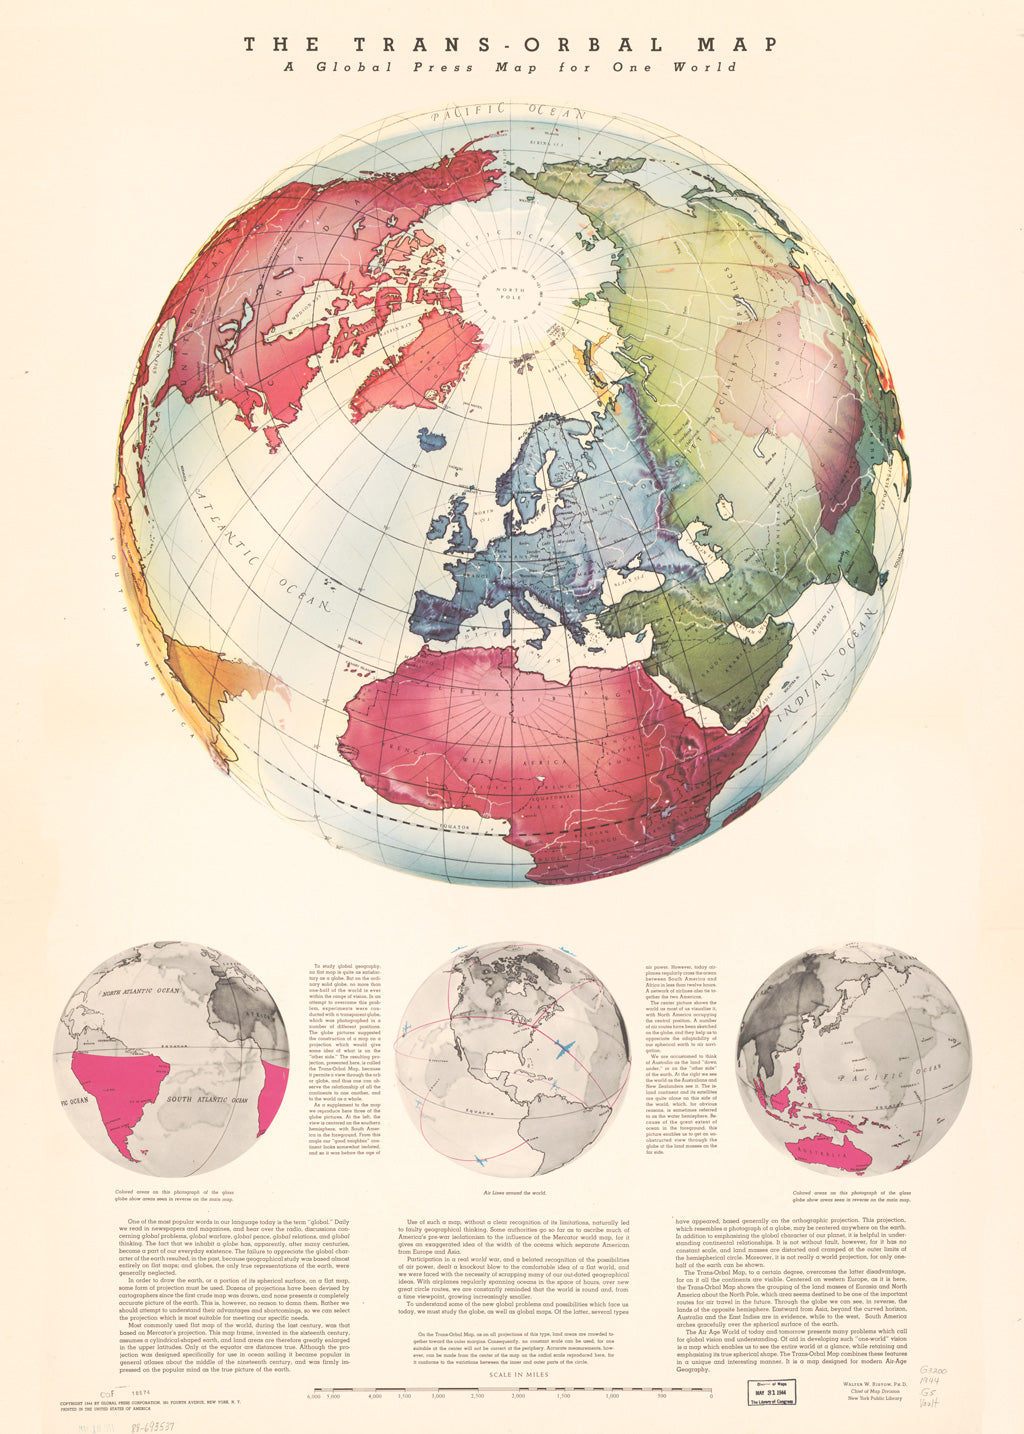 Global press map for one world 1944 hidden maps global press map for one world 1944 gumiabroncs Image collections